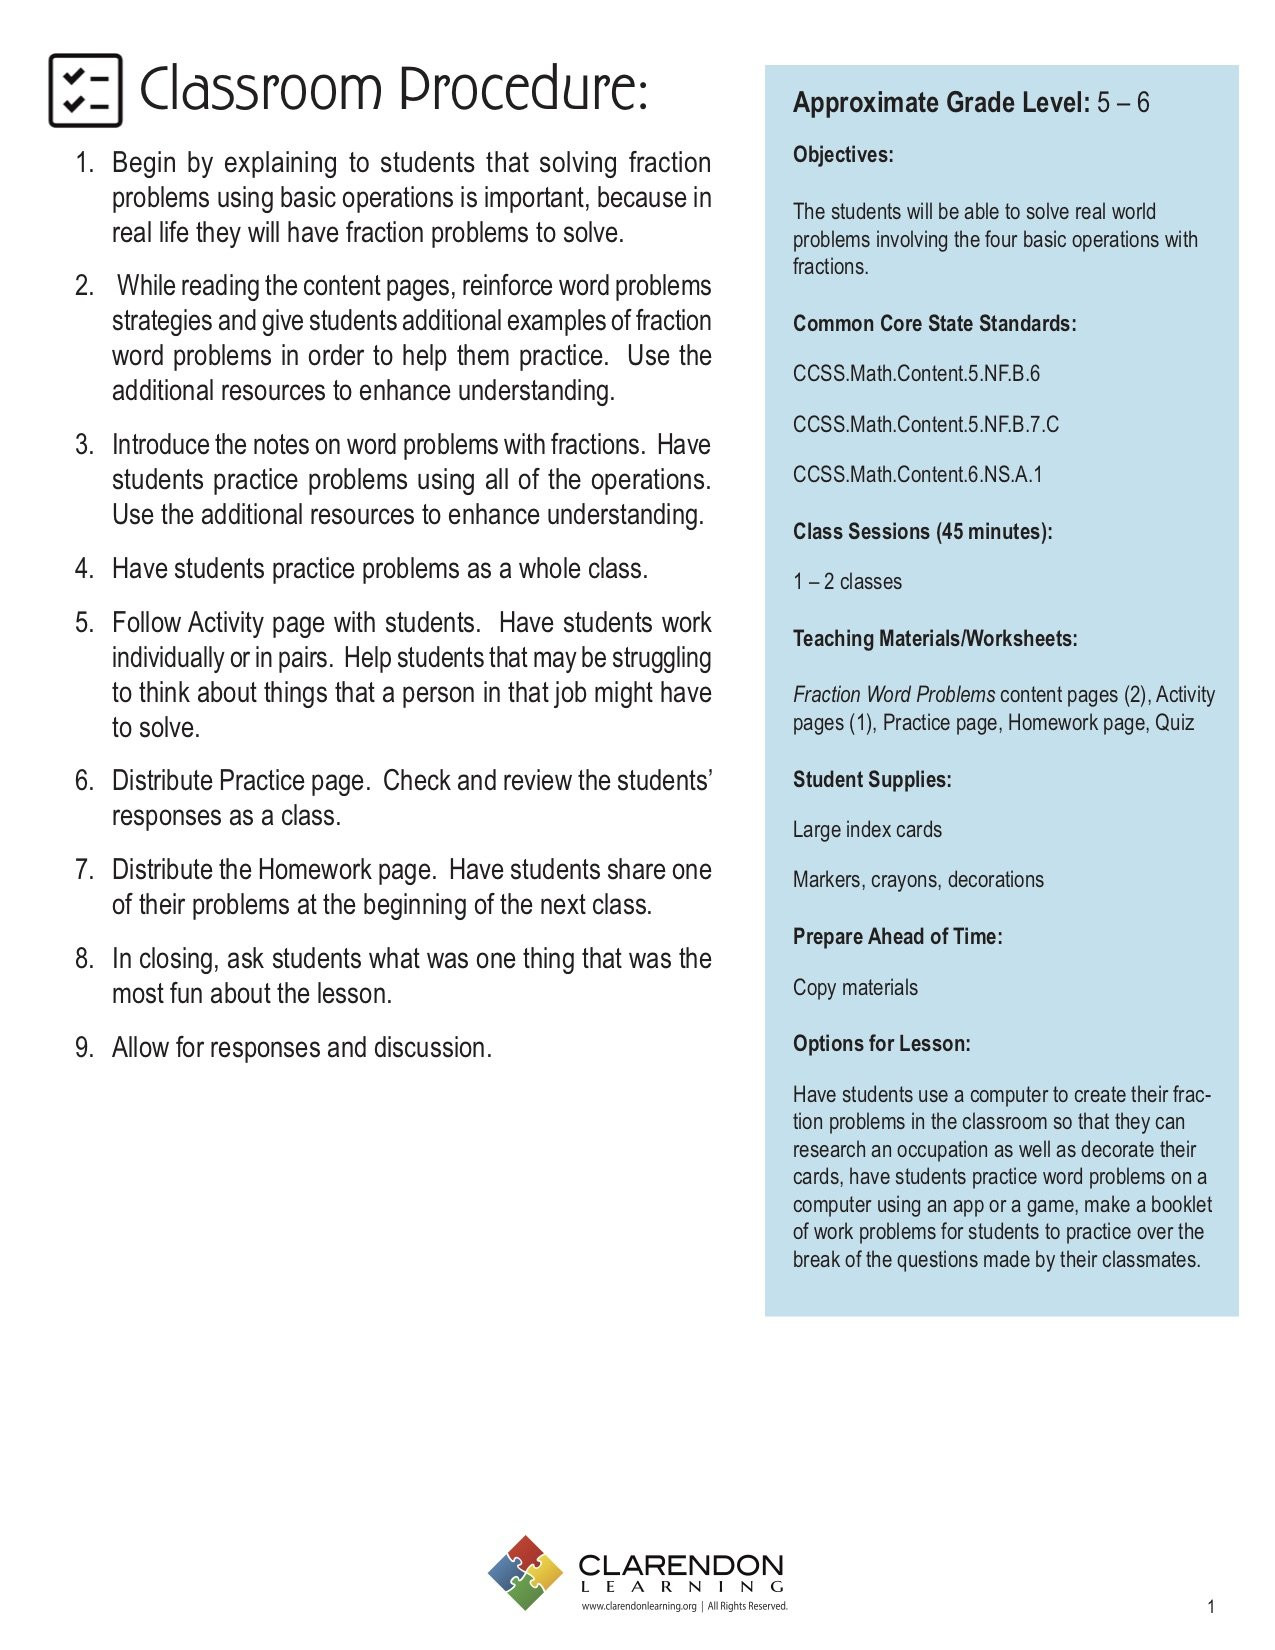 Real World Math Problems Worksheets Fraction Word Problems Lesson Plan